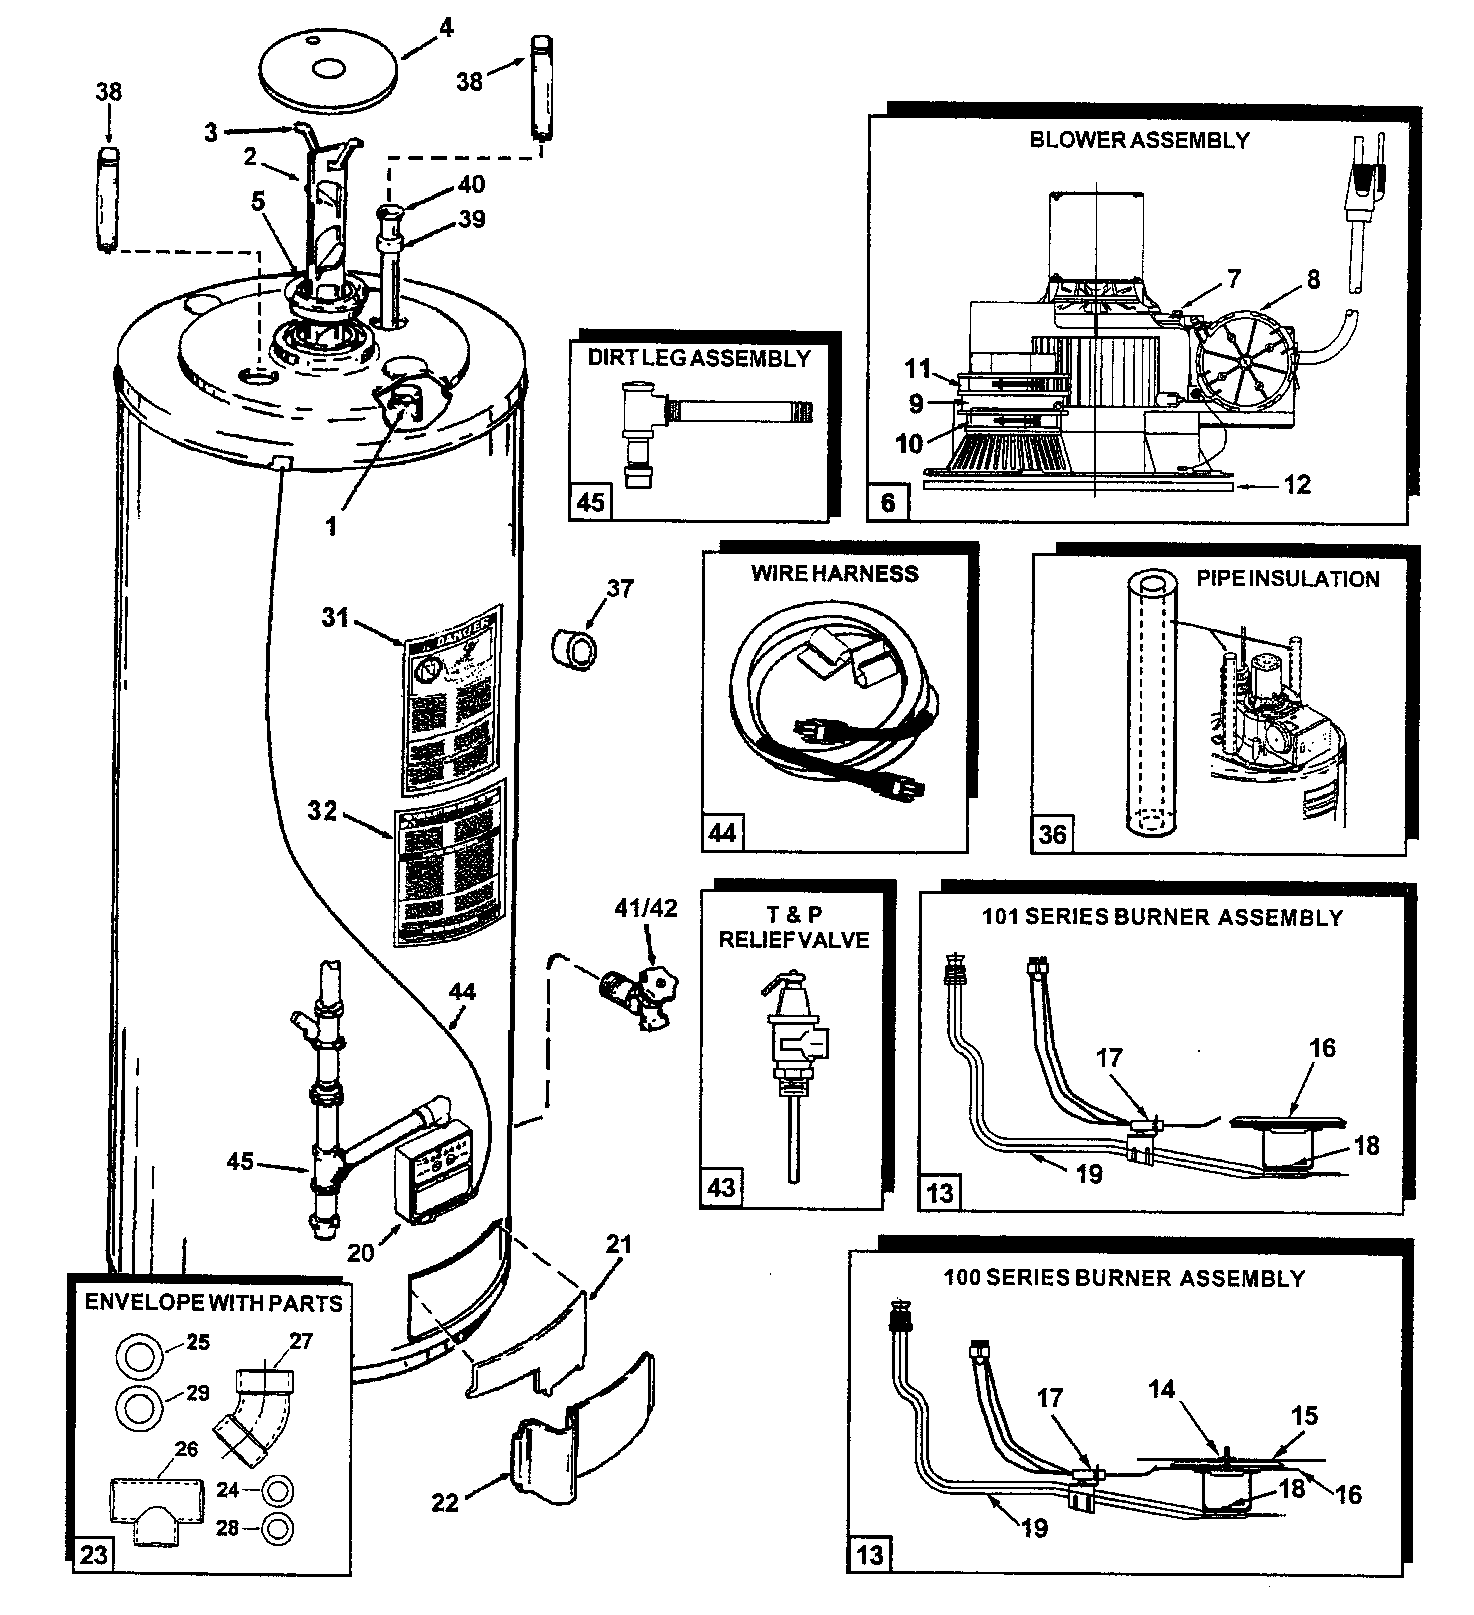 Water Pump Wiring Diagrams 230v Franklin Submersible Well Pump